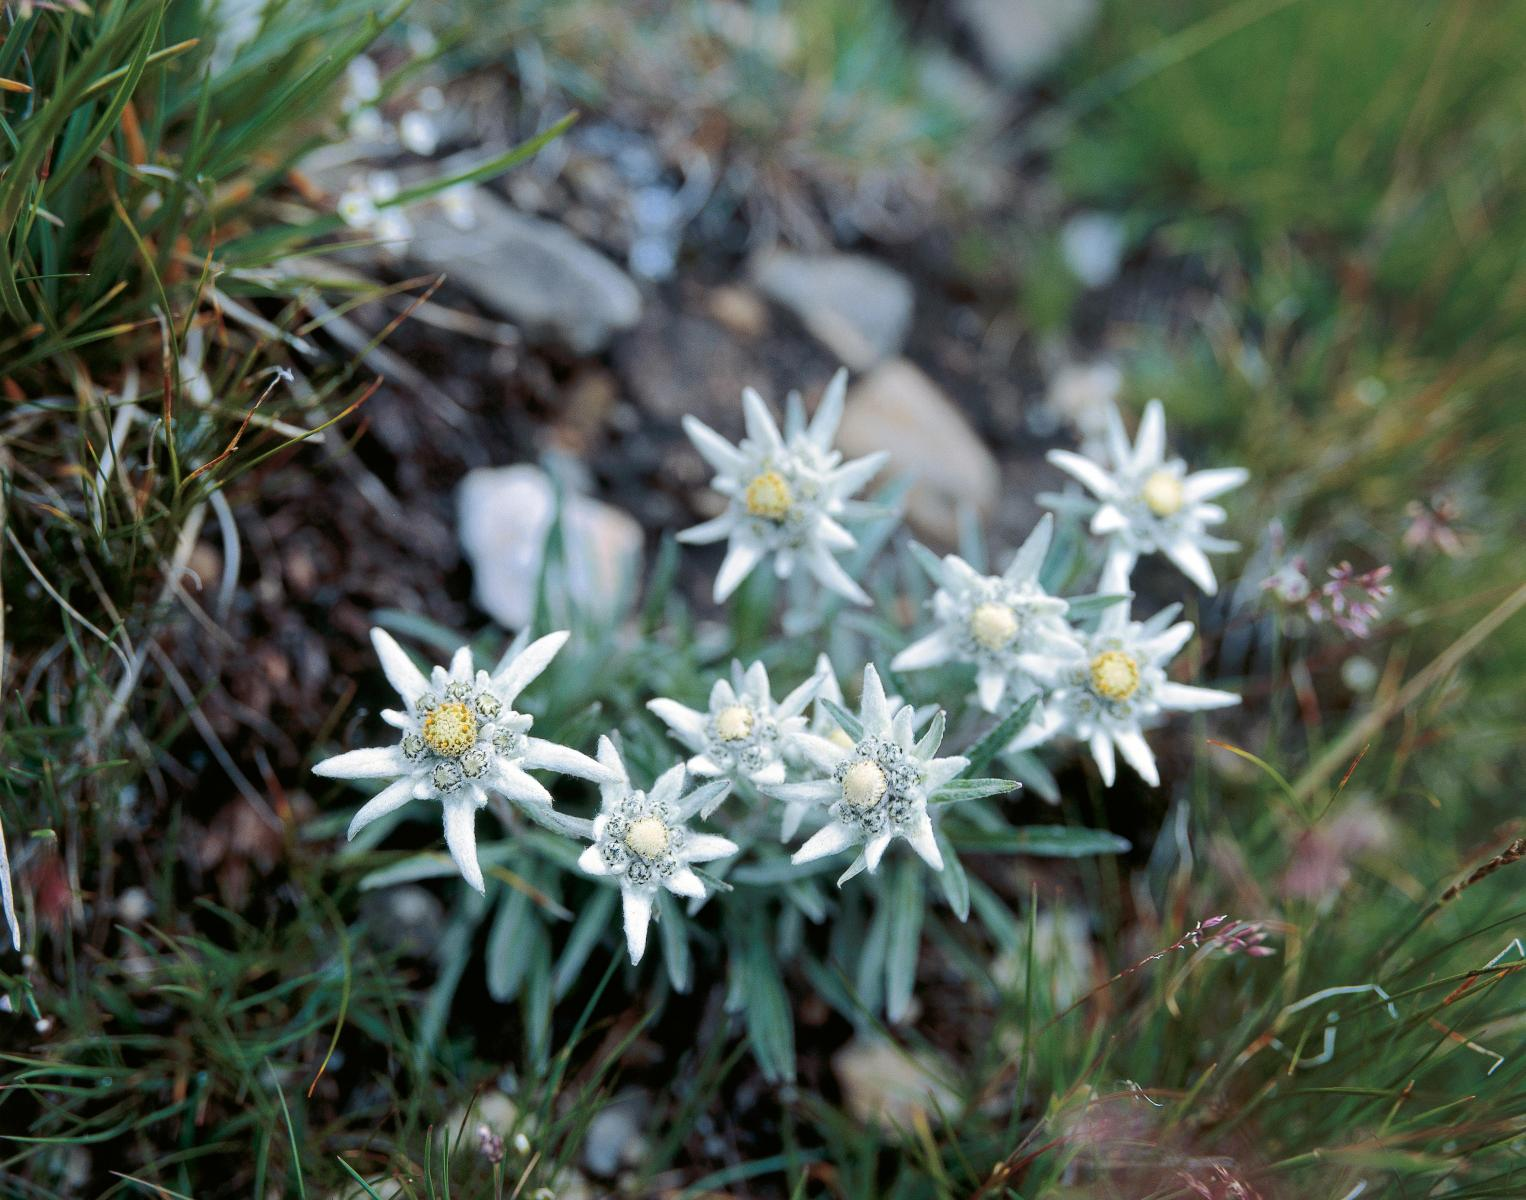 Edelweiss flowers in Switzerland